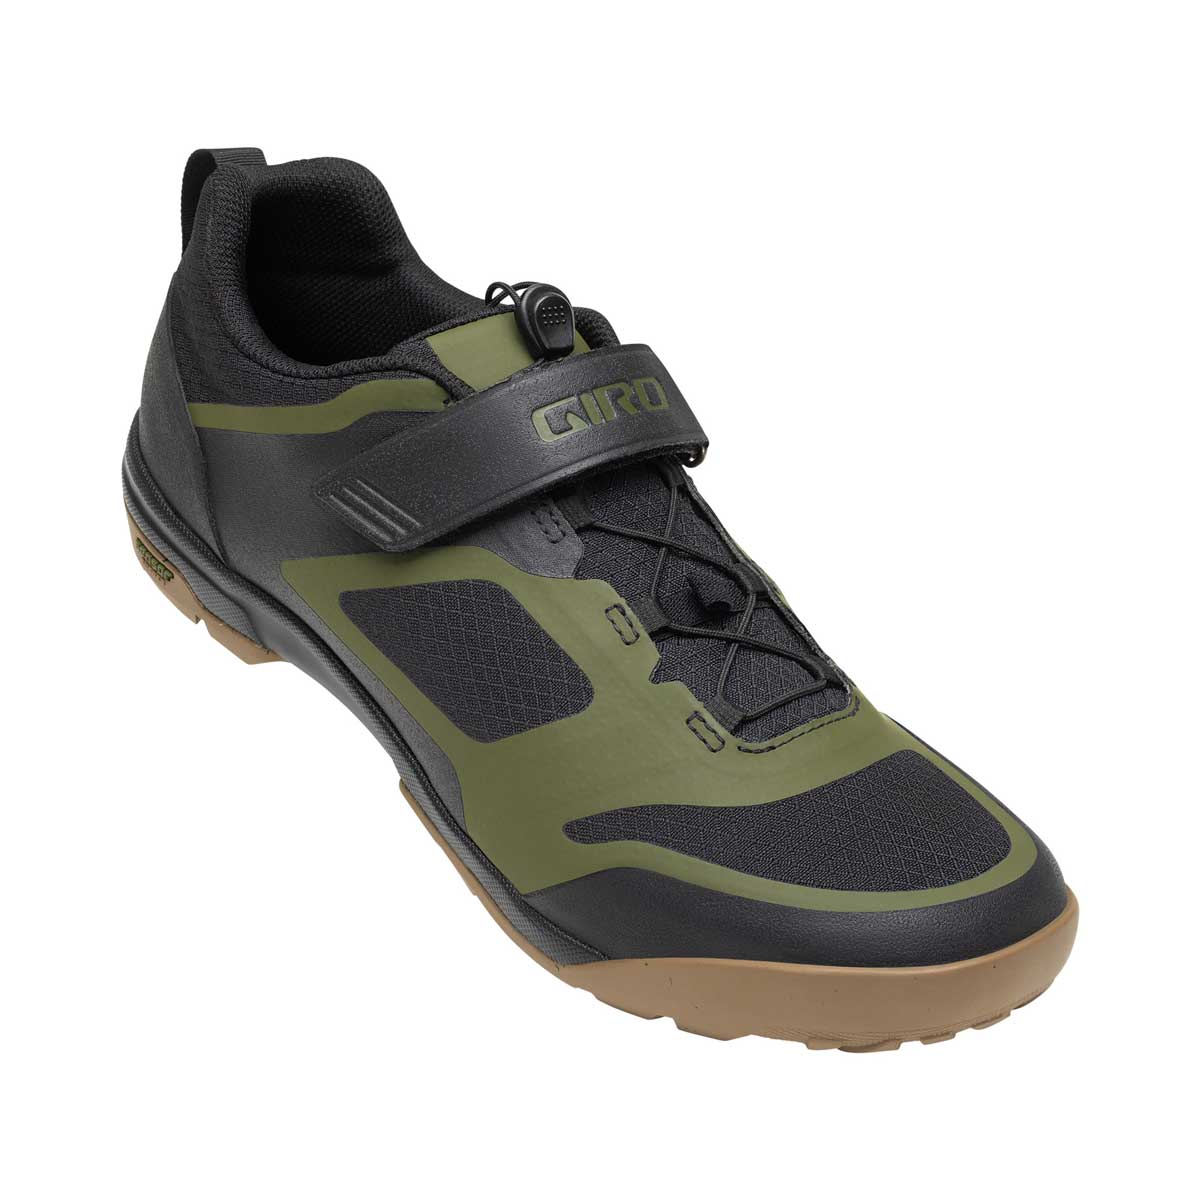 Giro Ventana Fastlance Shoe in Black and Olive main view